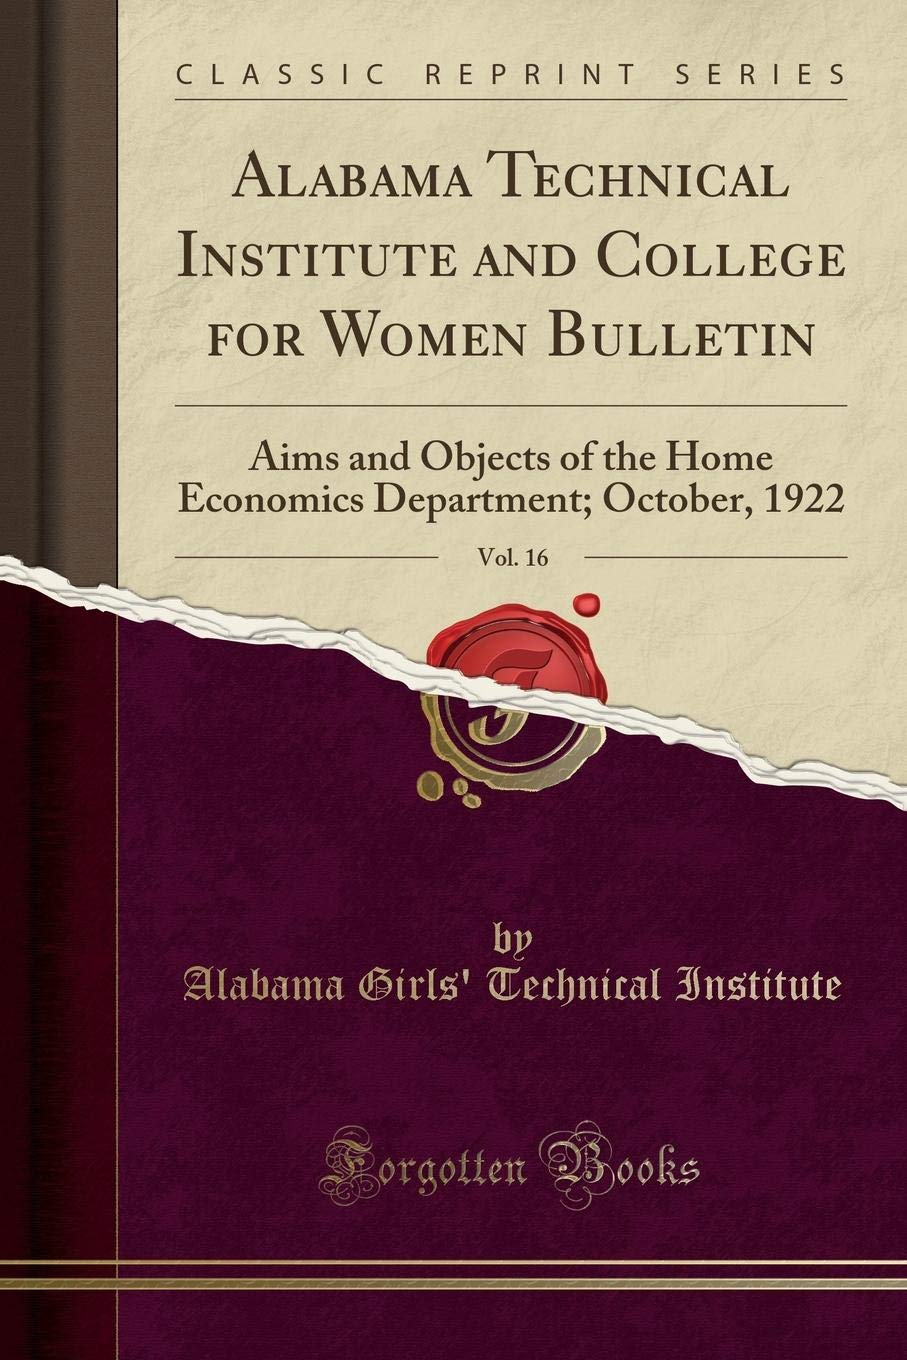 Read Online Alabama Technical Institute and College for Women Bulletin, Vol. 16: Aims and Objects of the Home Economics Department; October, 1922 (Classic Reprint) ebook